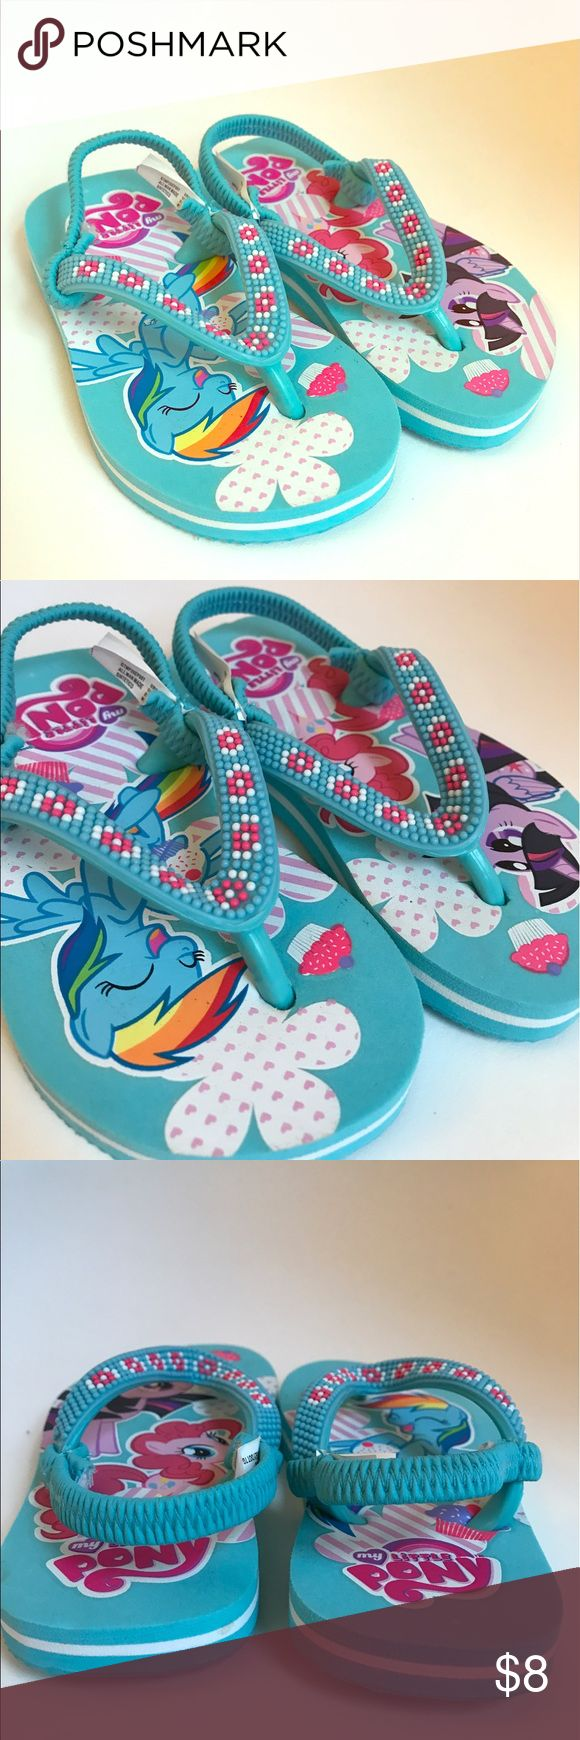 My Little Pony flip flops toddler s 5-6 Adorable flip flips with beaded strap. NWOT never worn. There is a small indention toward the back of one (pictured). It isn't from wear, it just came that way. Toddler girl size small/ 5-6 Shoes Sandals & Flip Flops